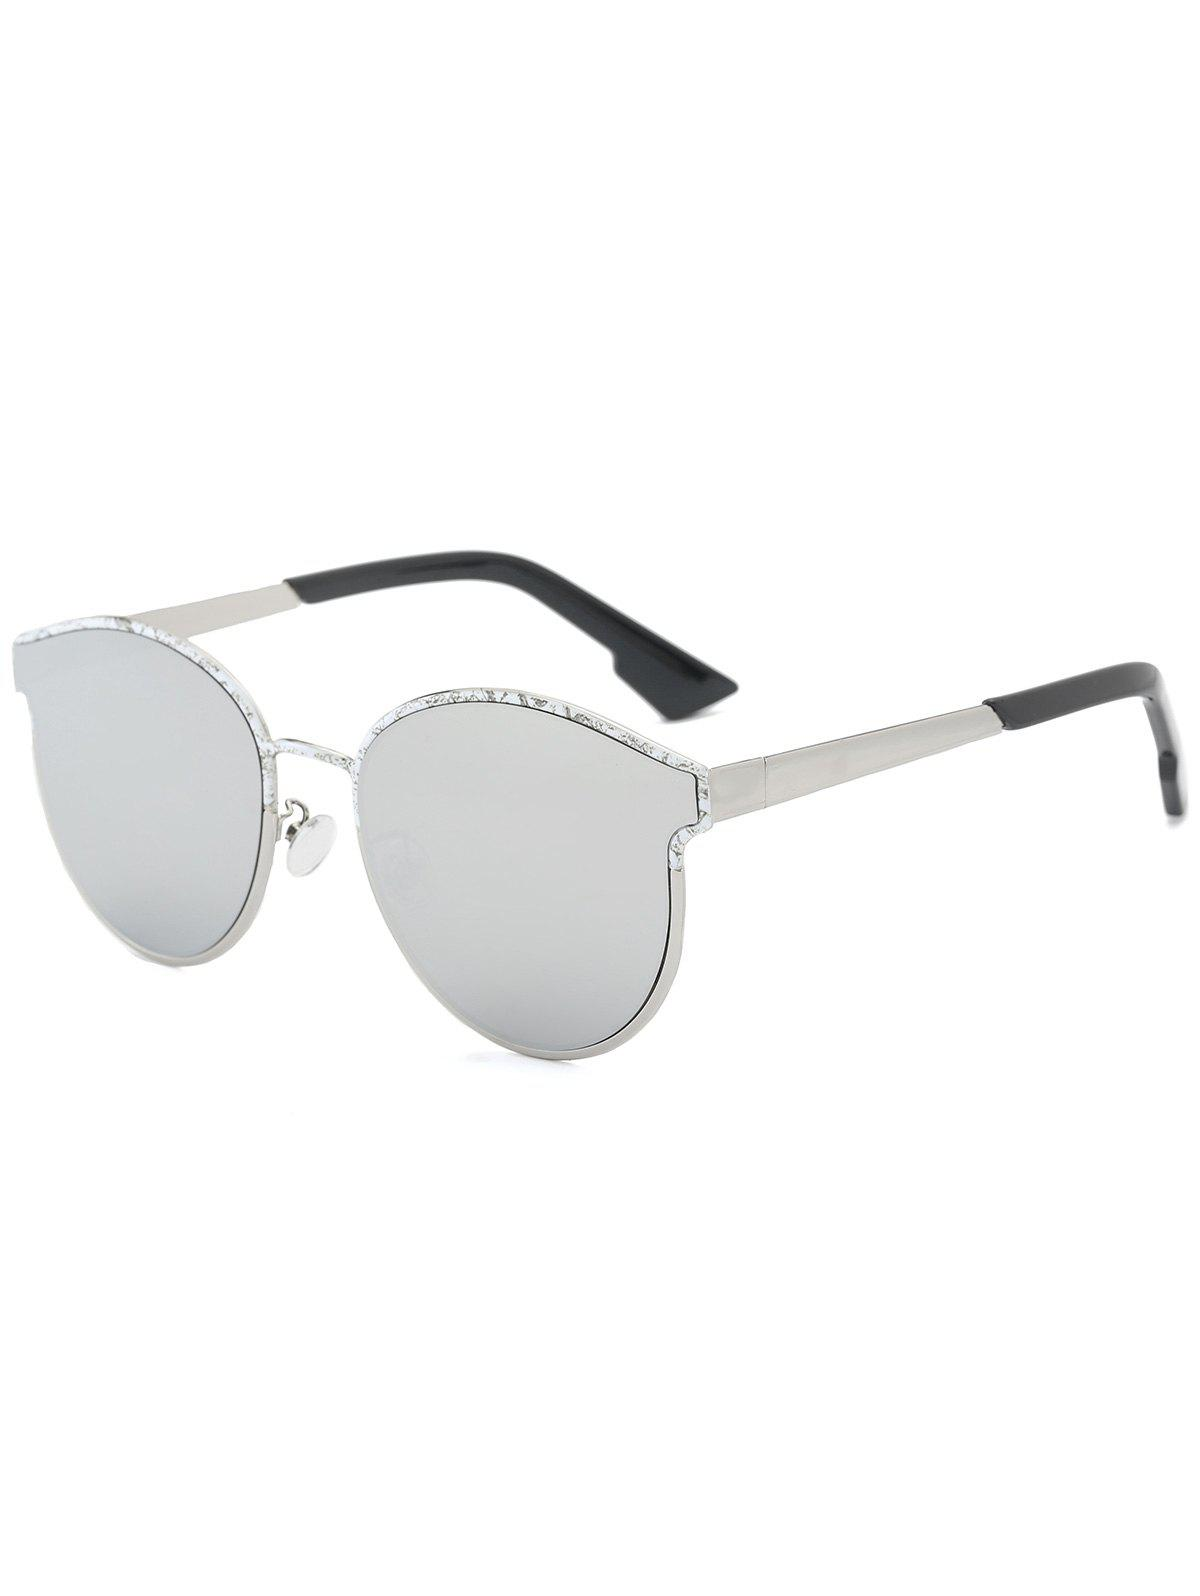 Piebald Frame Spliced Butterfly Shape Sunglasses - SILVER